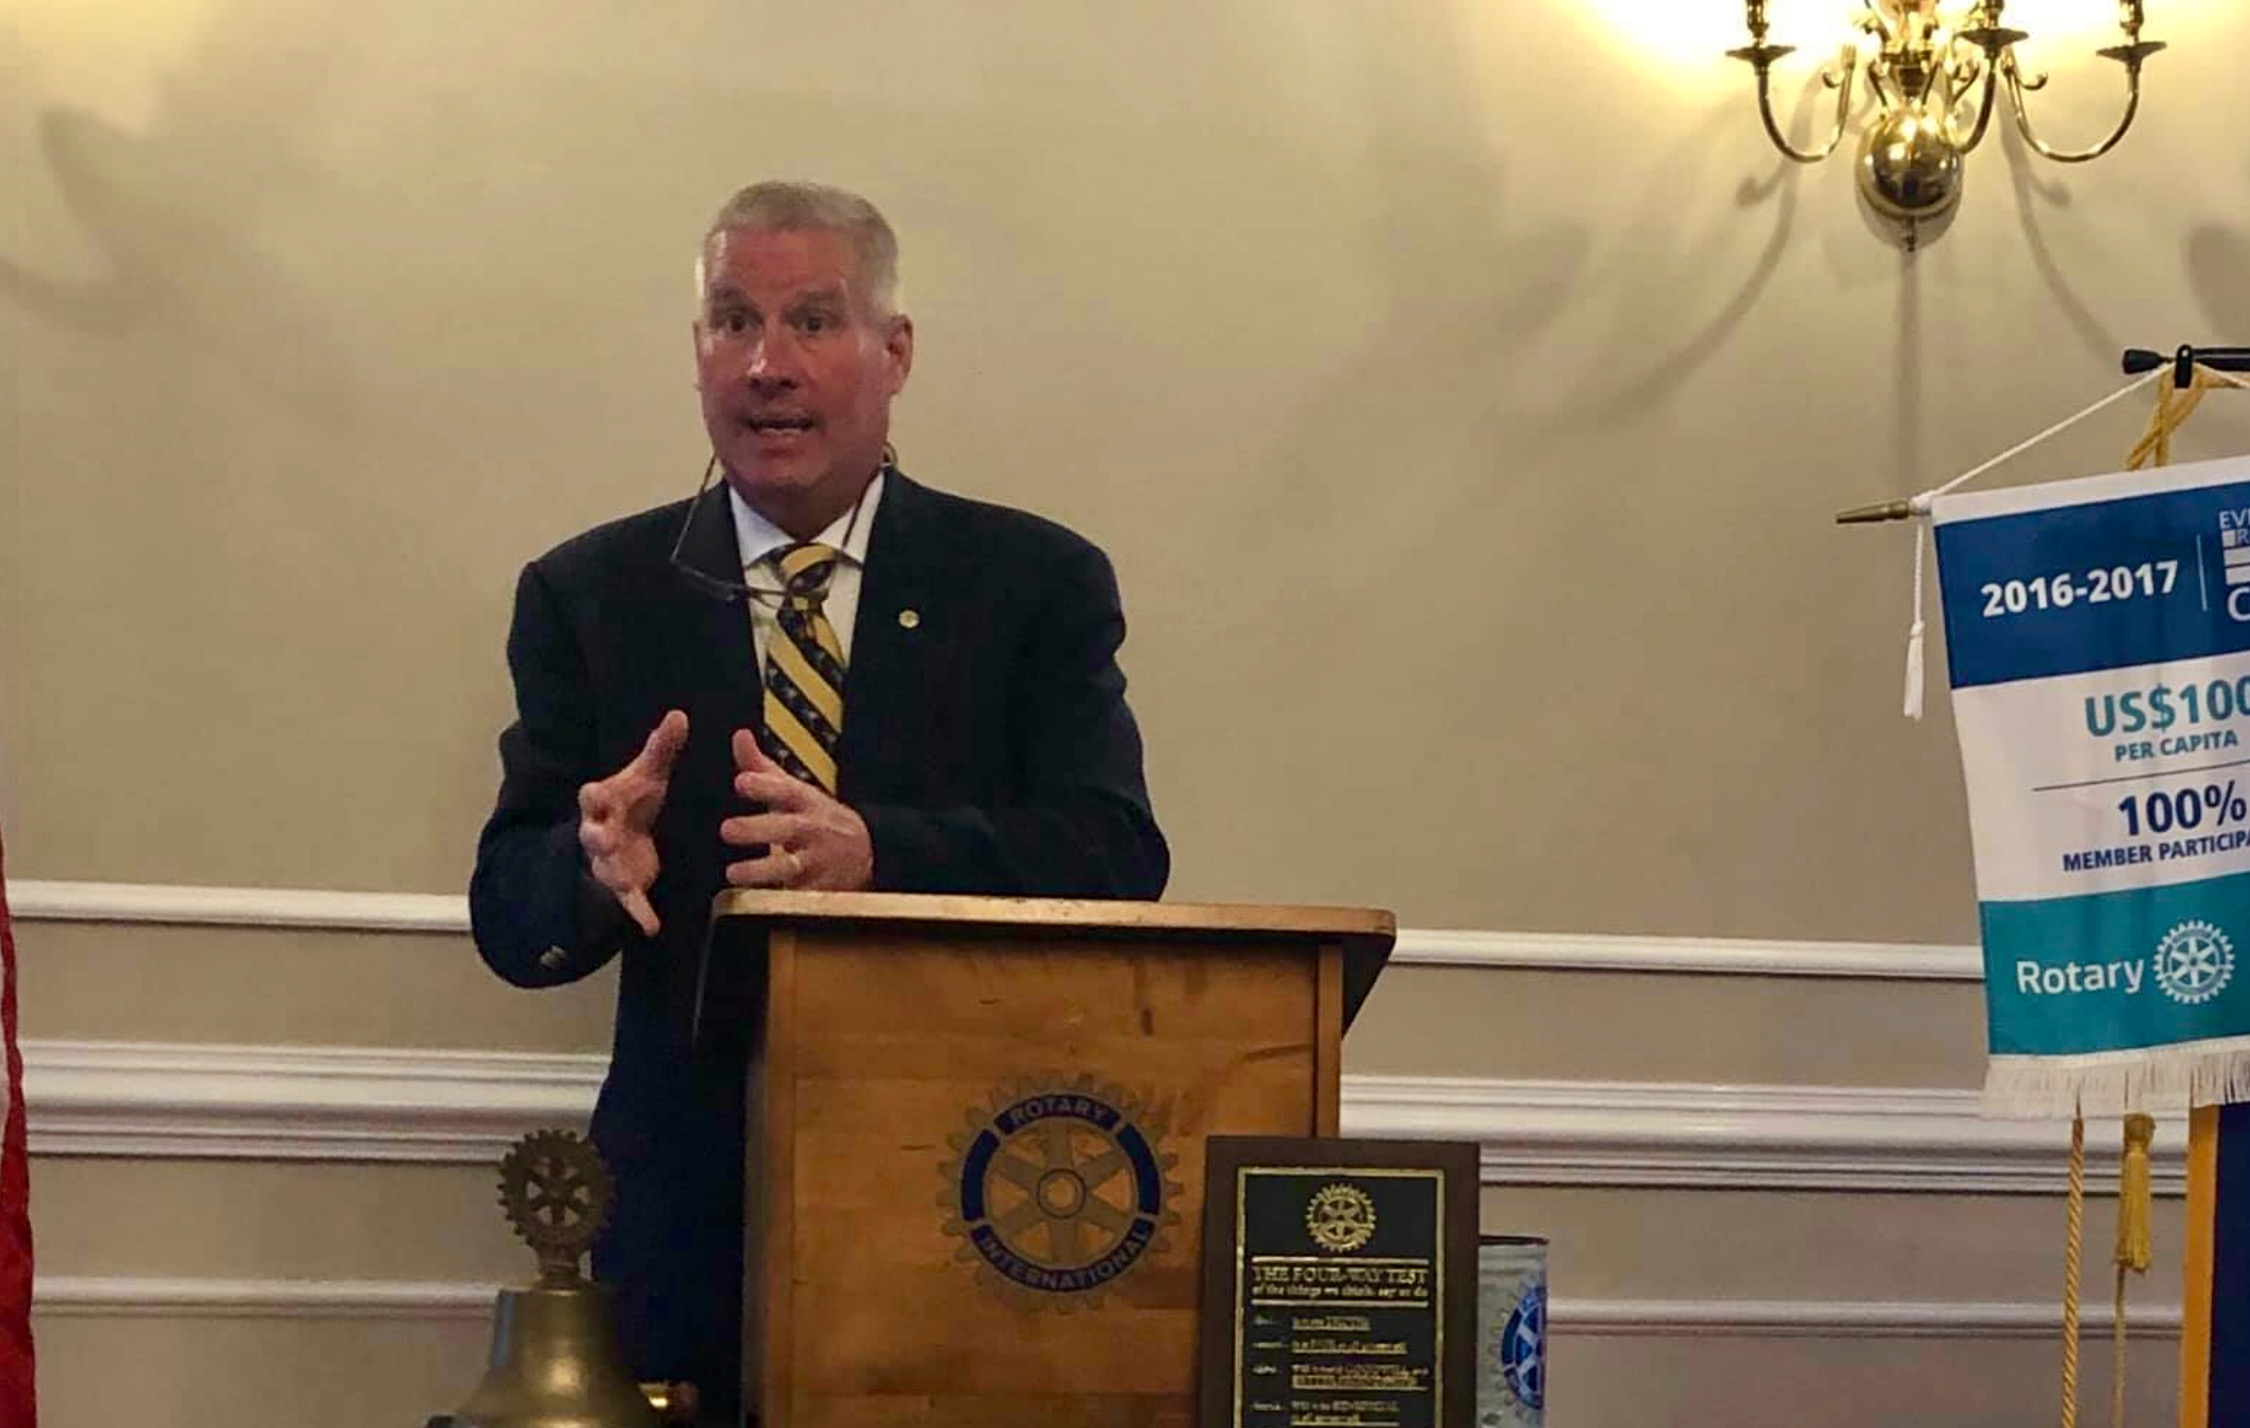 FITSNews – Big Money In Florence County, SC Sheriff's Election